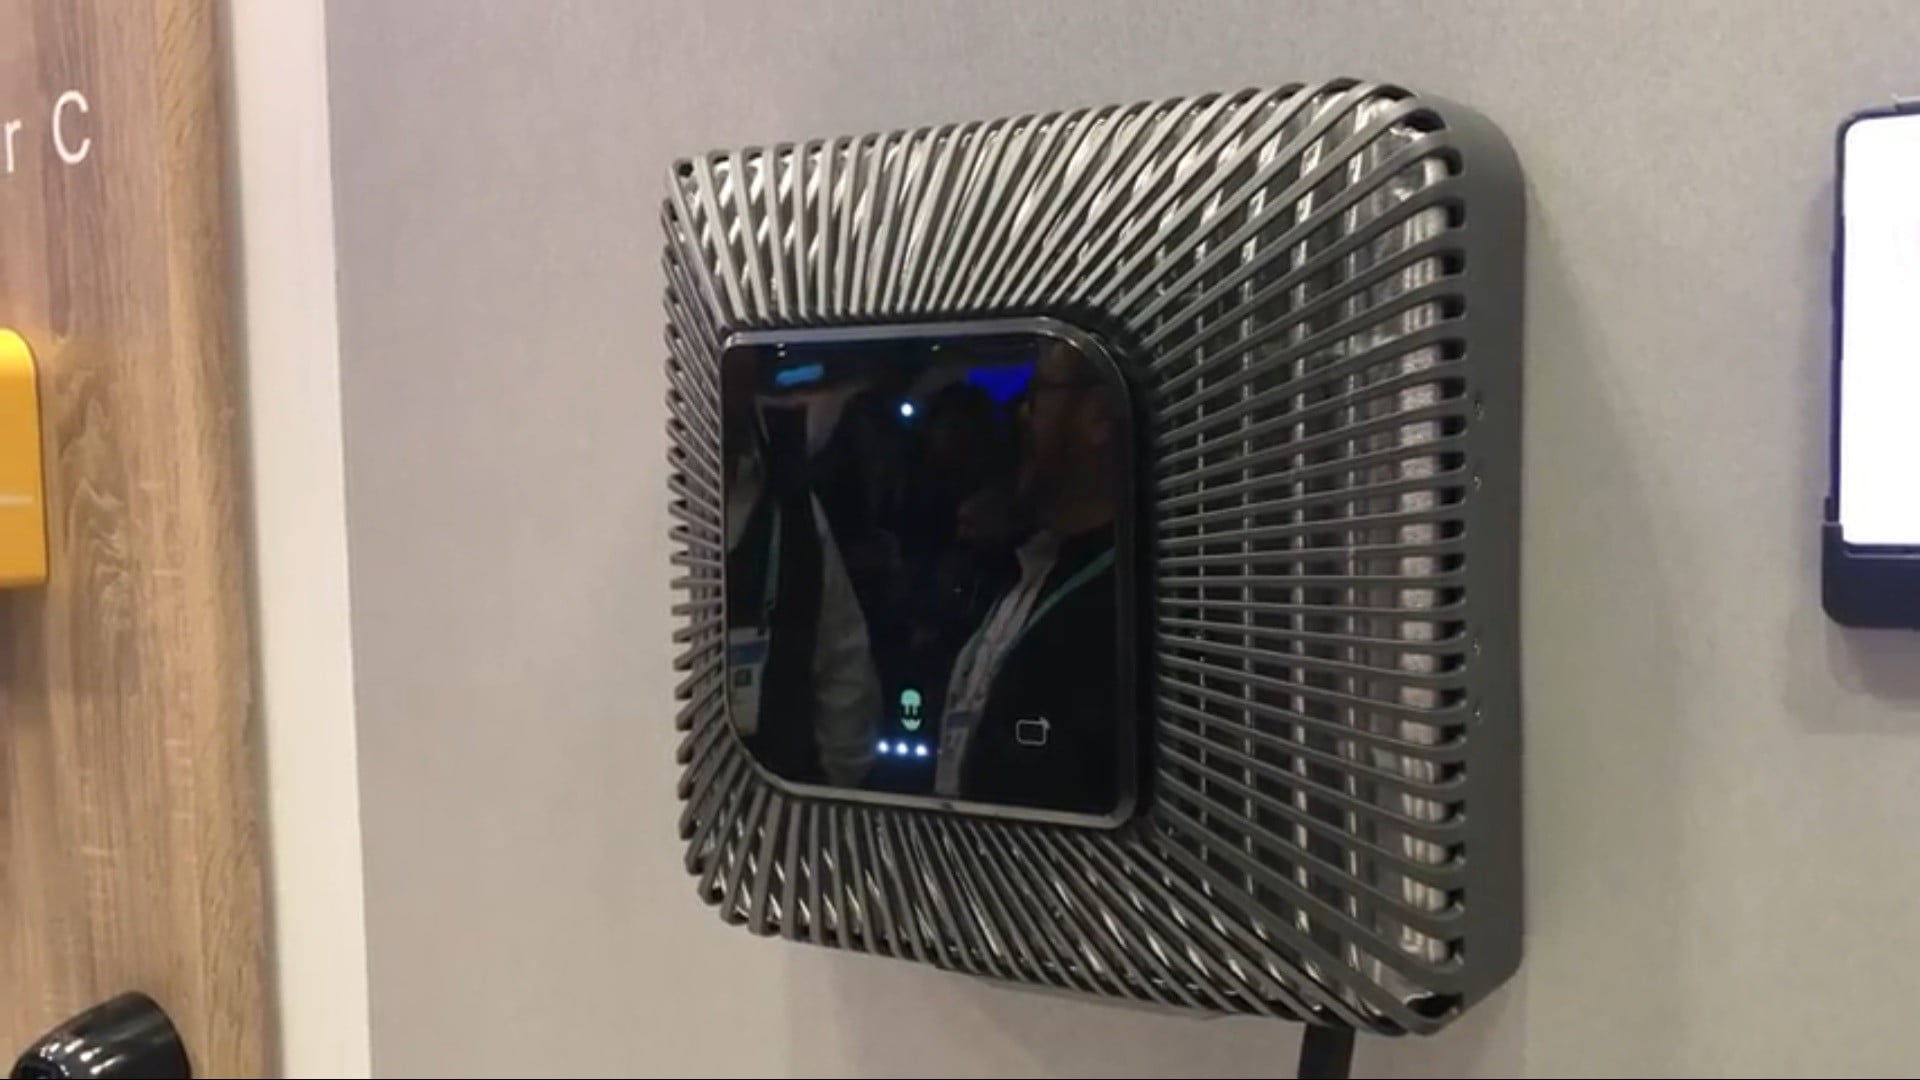 wallbox quasar bidirectional EV charger